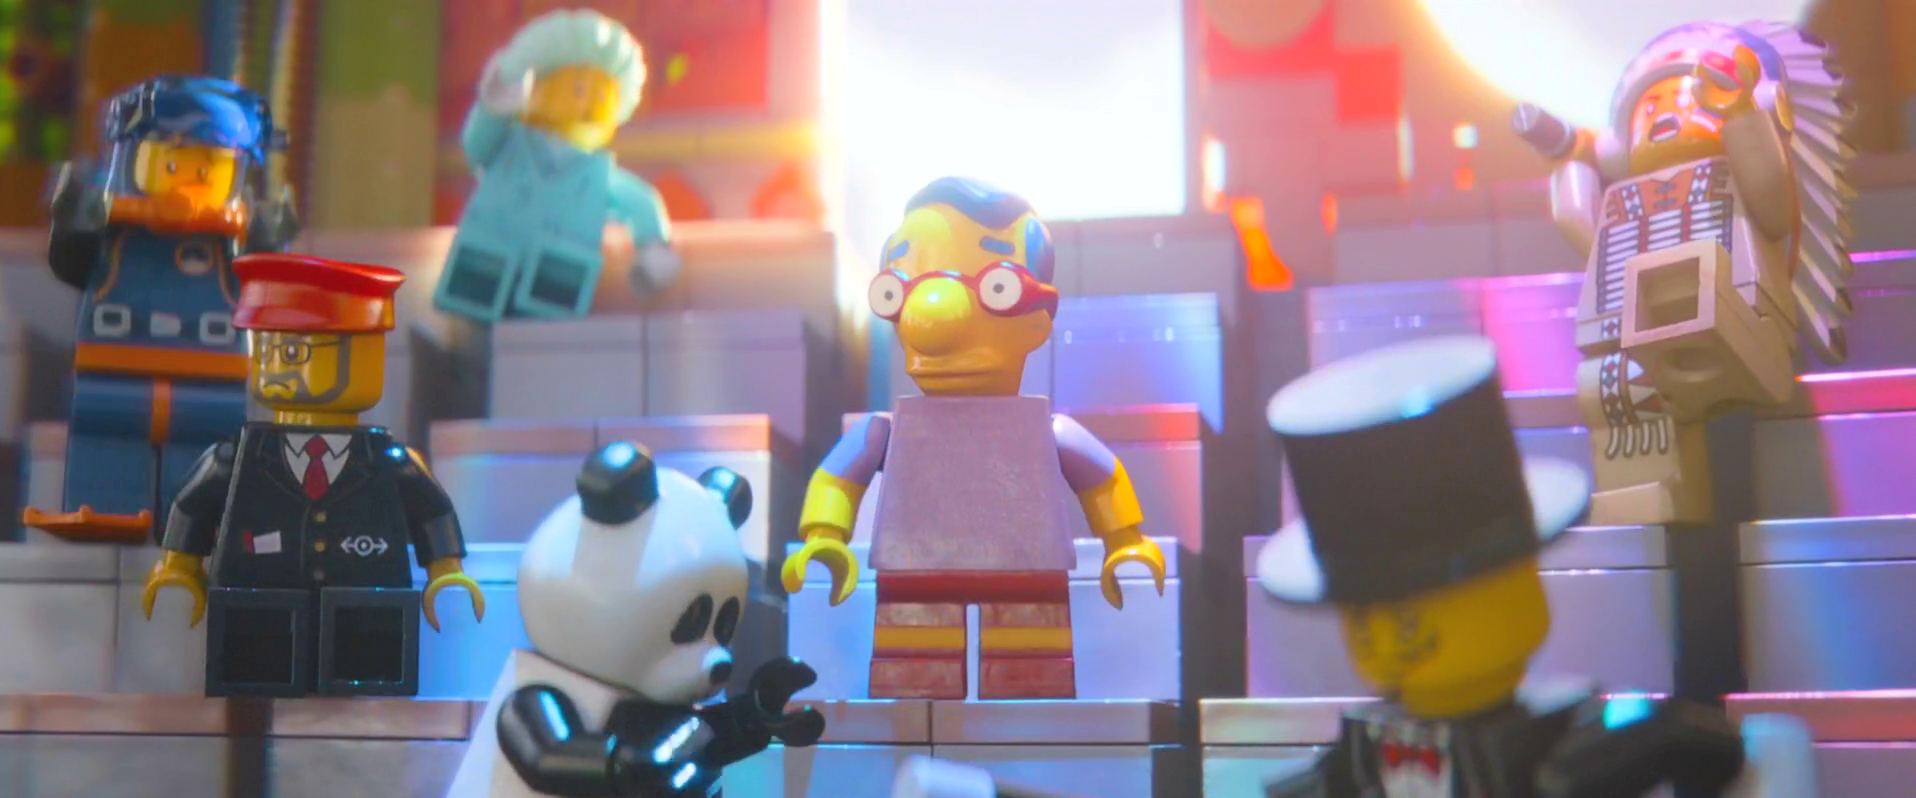 Milhouse Lego Movie.png